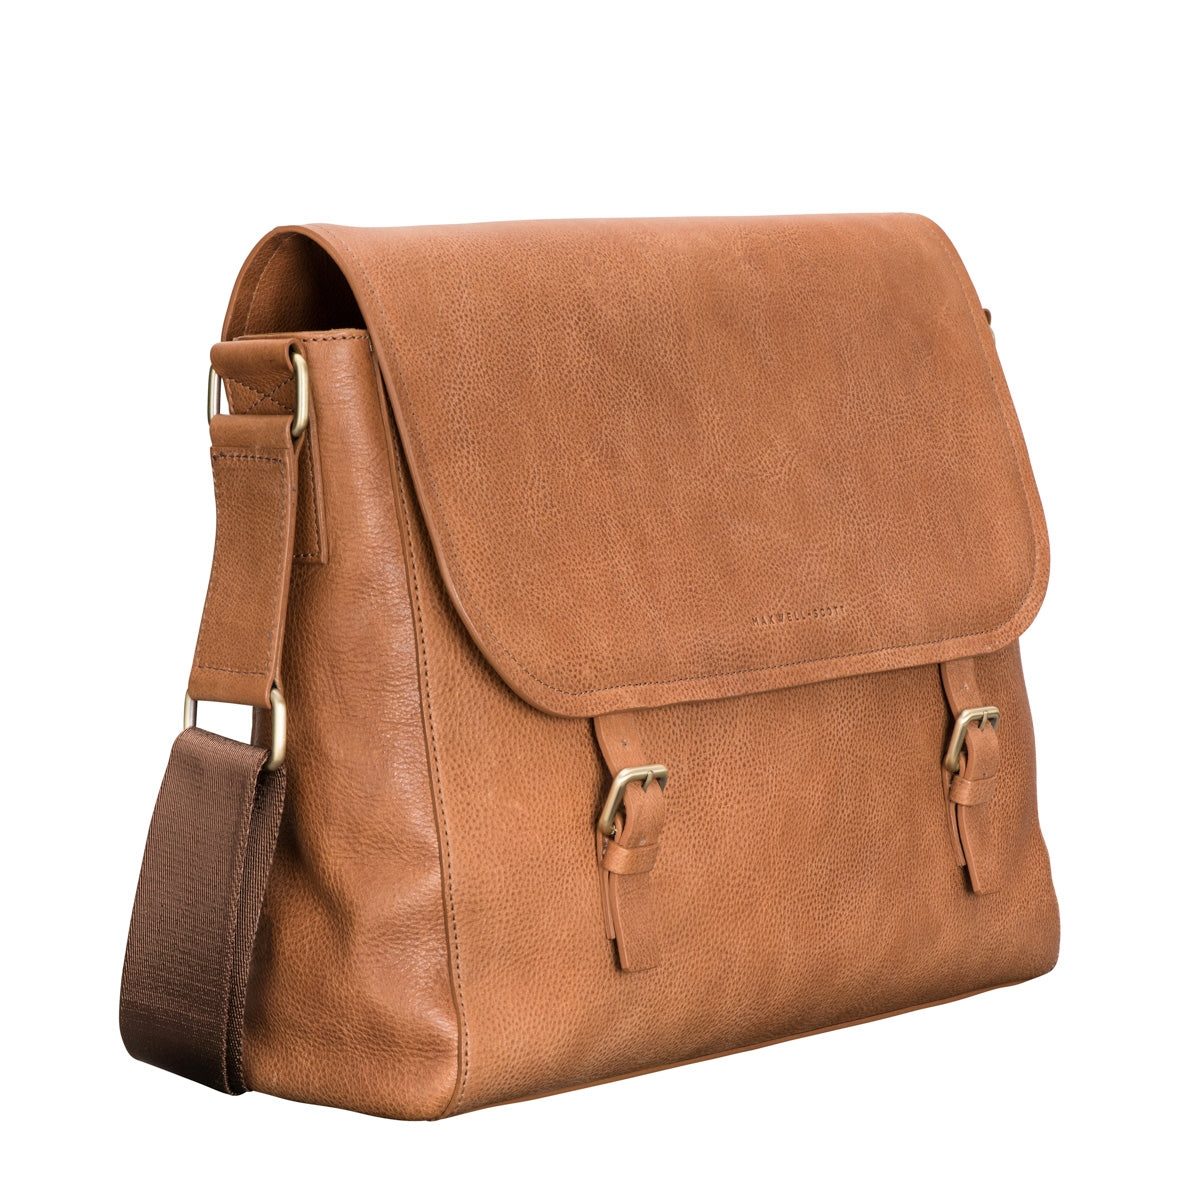 Image 2 of the 'Ravenna' Men's Leather Classic Satchel Bag